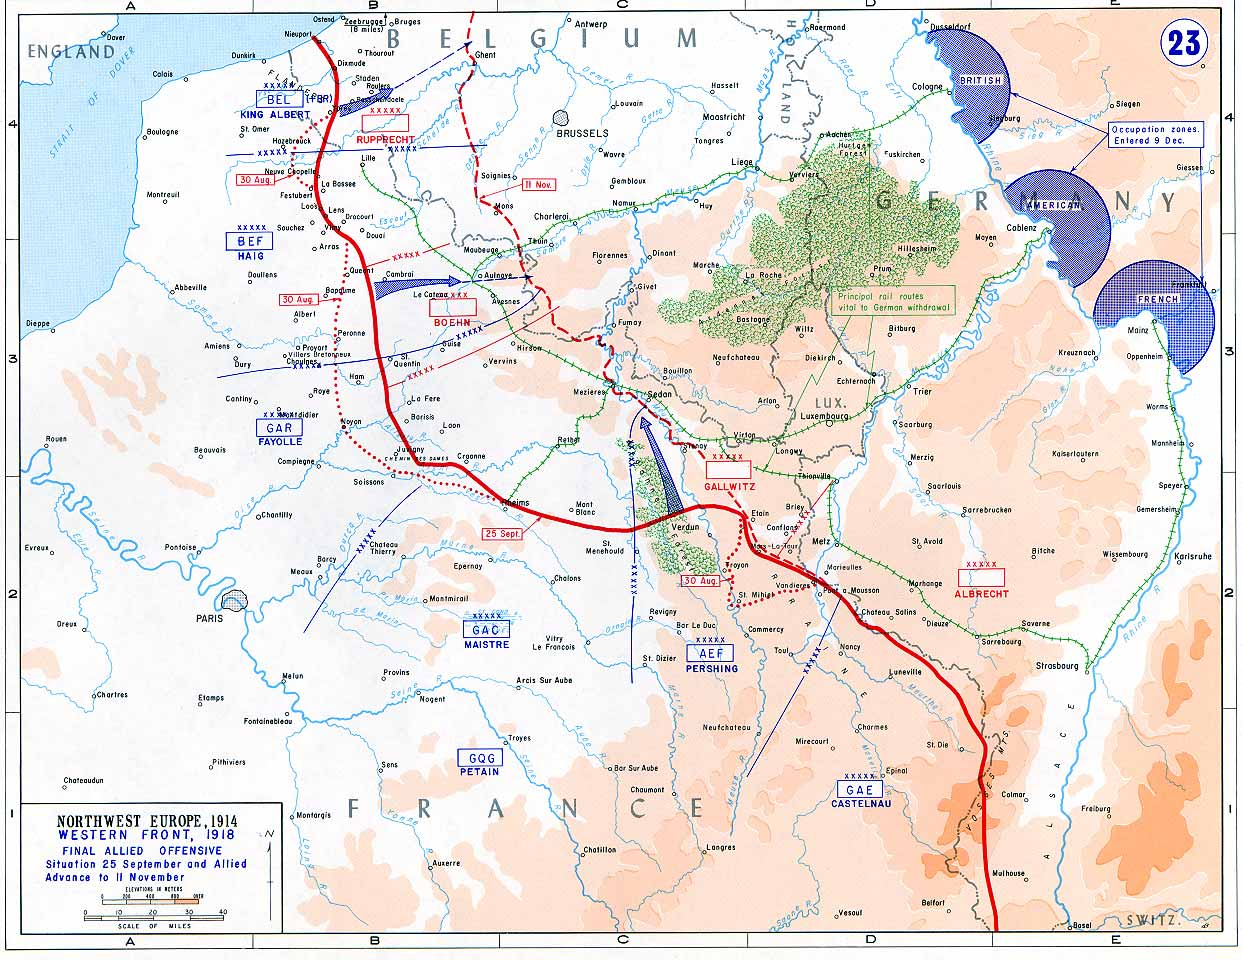 as the map below shows the positions the two sides occupied on 30 aug 1918 were not materially different from the positions they held on 21 feb 1916